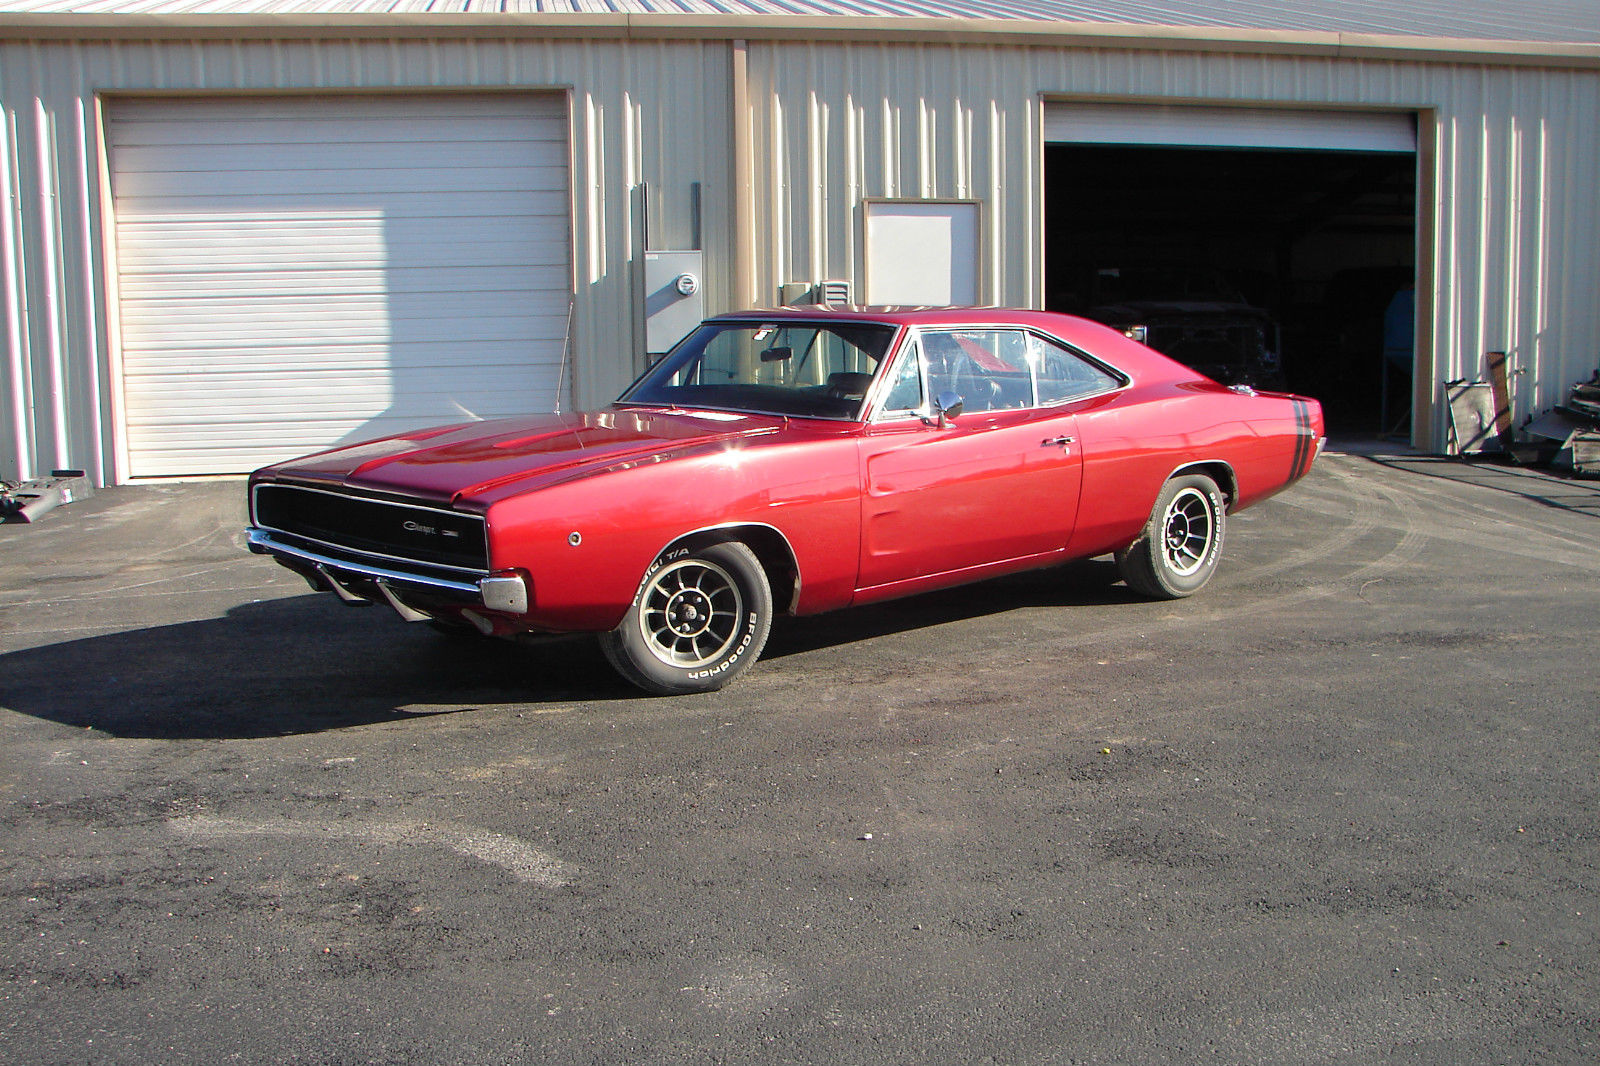 Mopar Archives - Project Cars For Sale